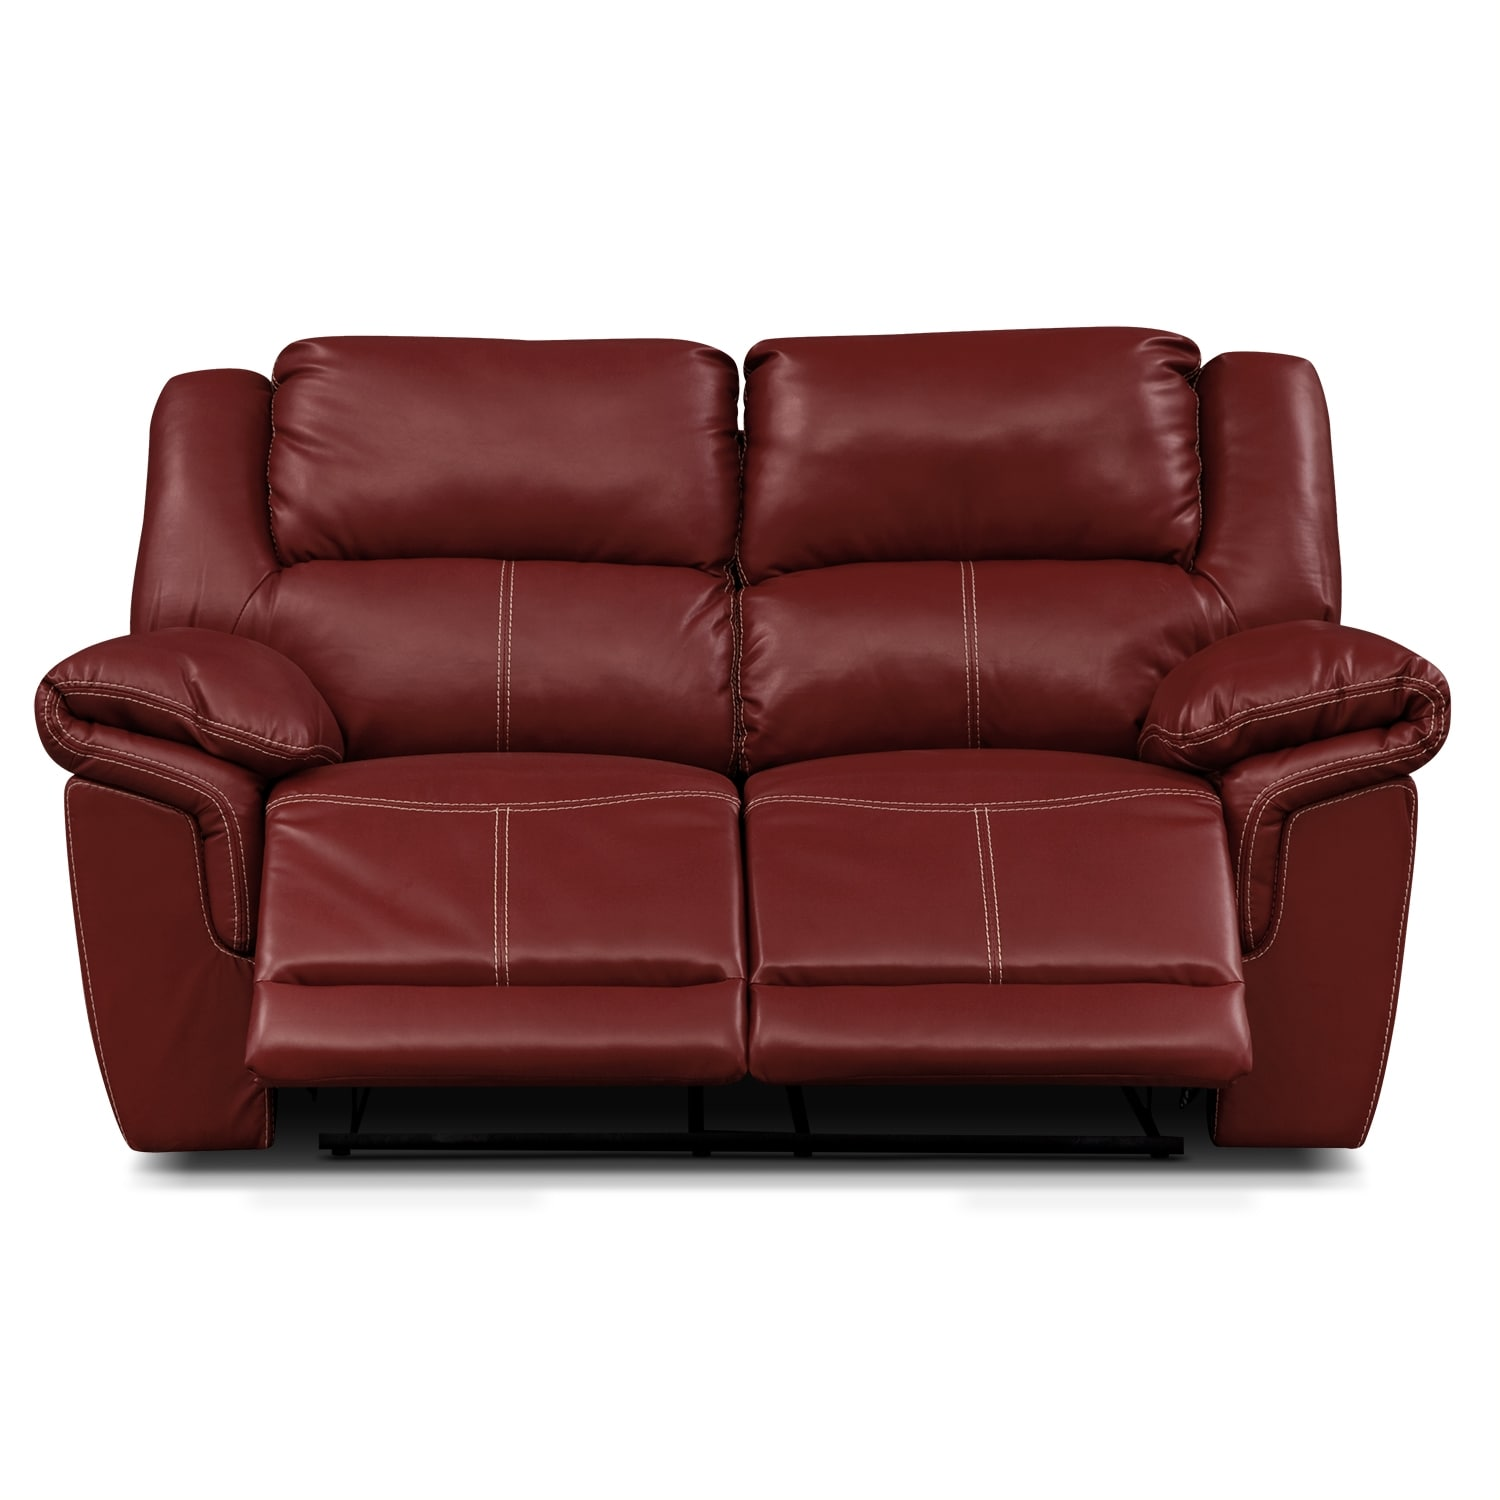 Jaguar ii leather dual reclining loveseat value city Reclining leather sofa and loveseat